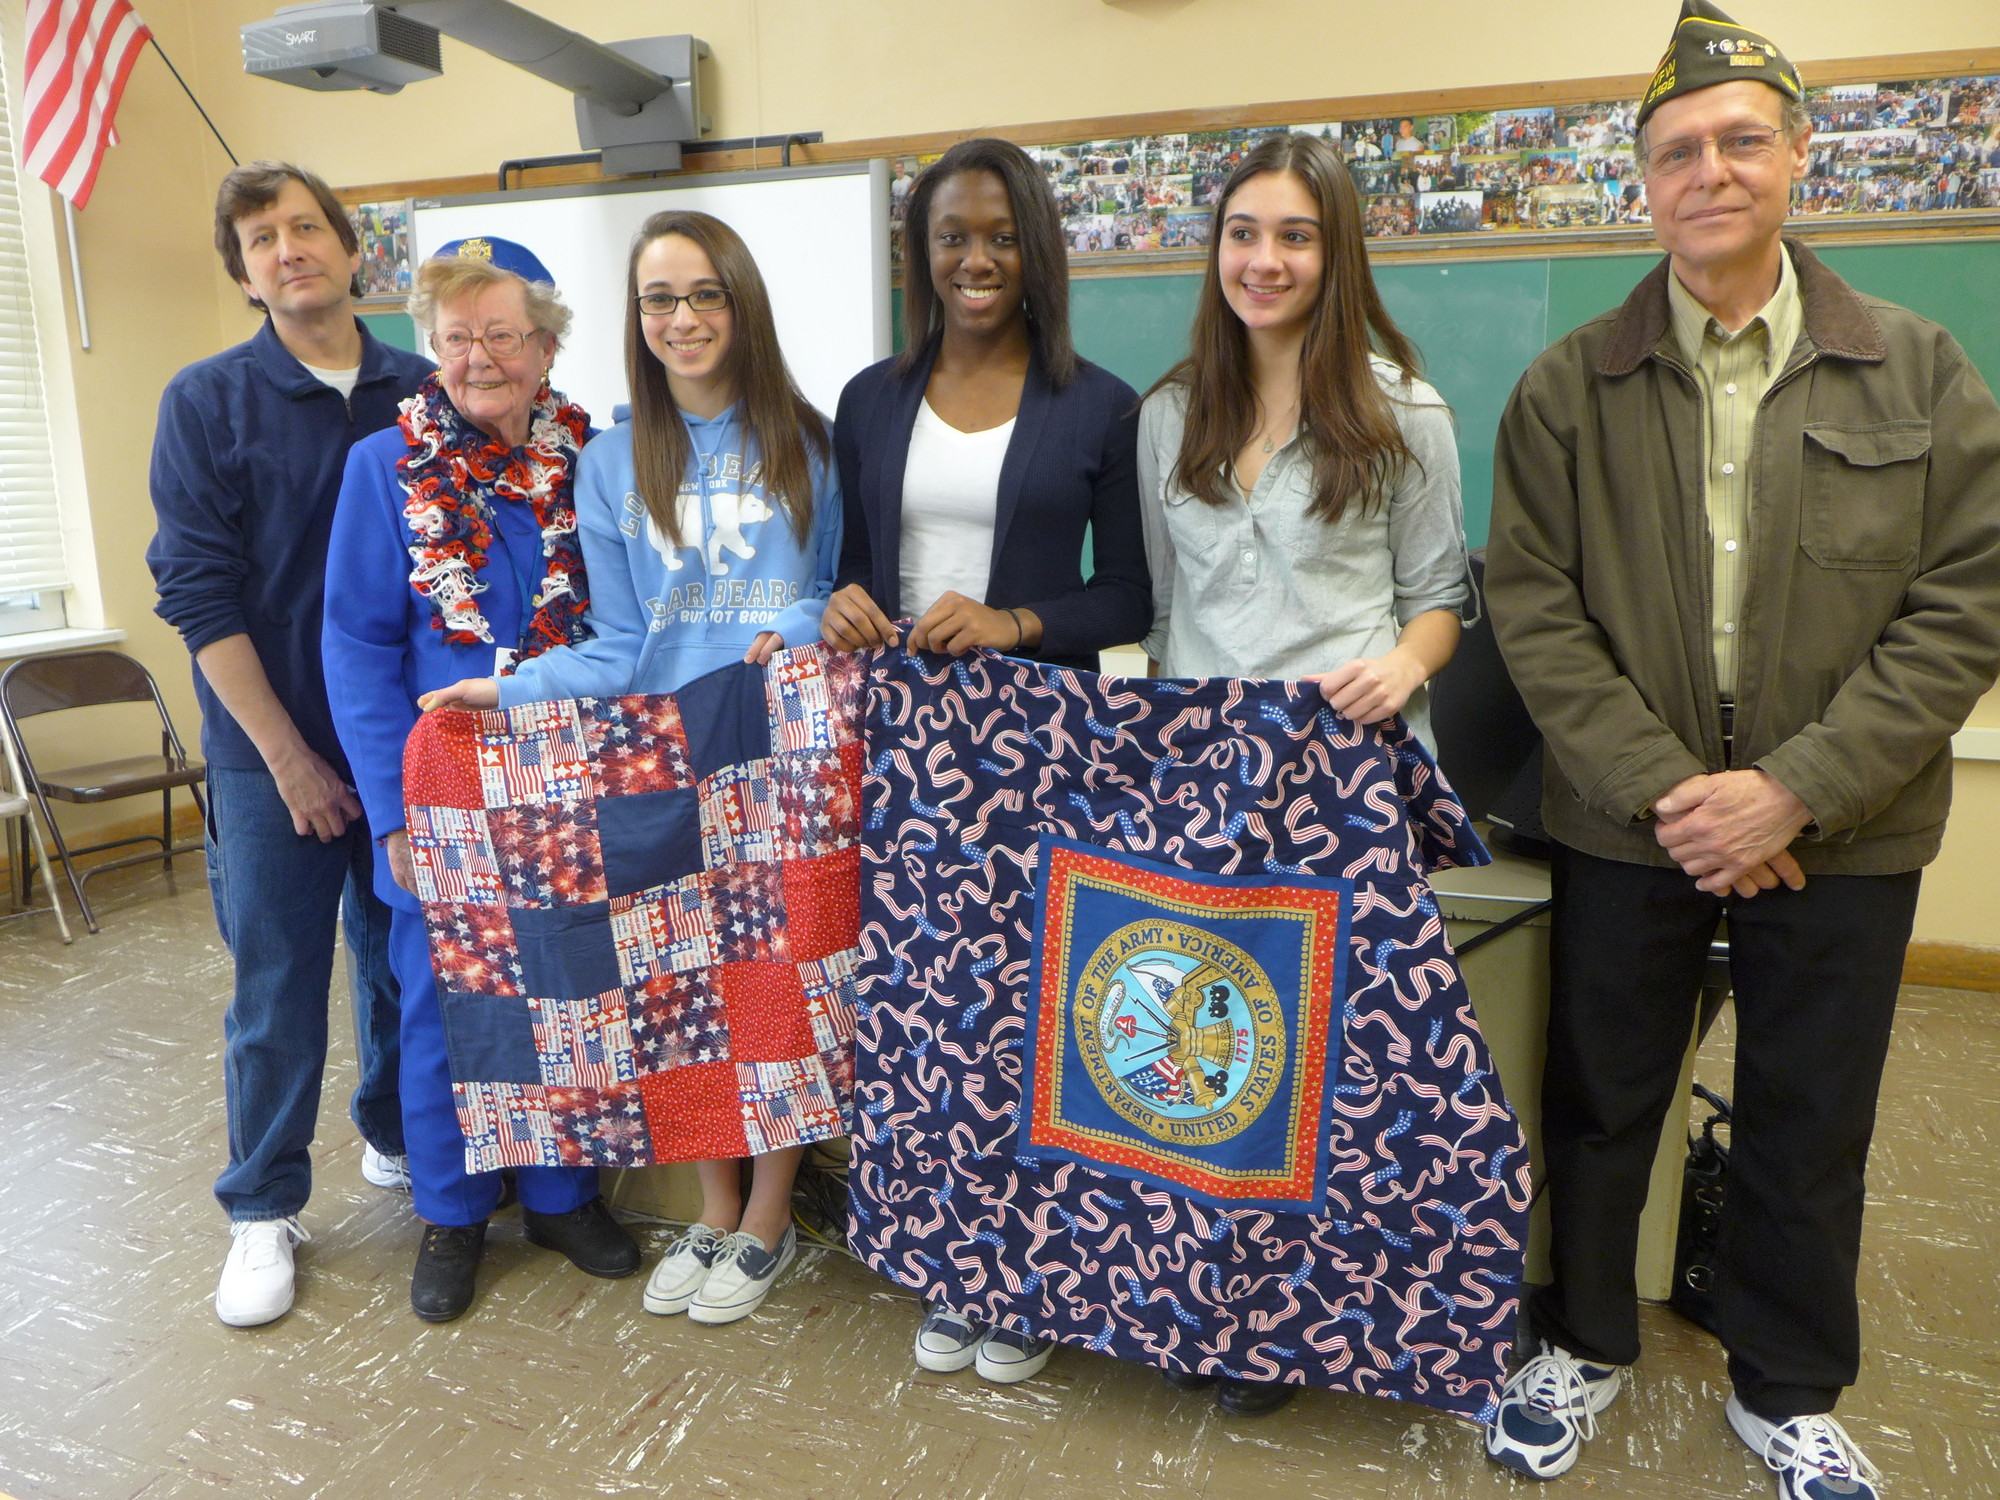 Scott Miller, VFW member and contest judge, Rita Trenz, Chairperson, Voice of Democracy program, Averi Amsterdam, Woodlyn Daniel and Jessica Sammon, essay contest winners, and Raymond Litwin, VFW Post 5199 Commander.